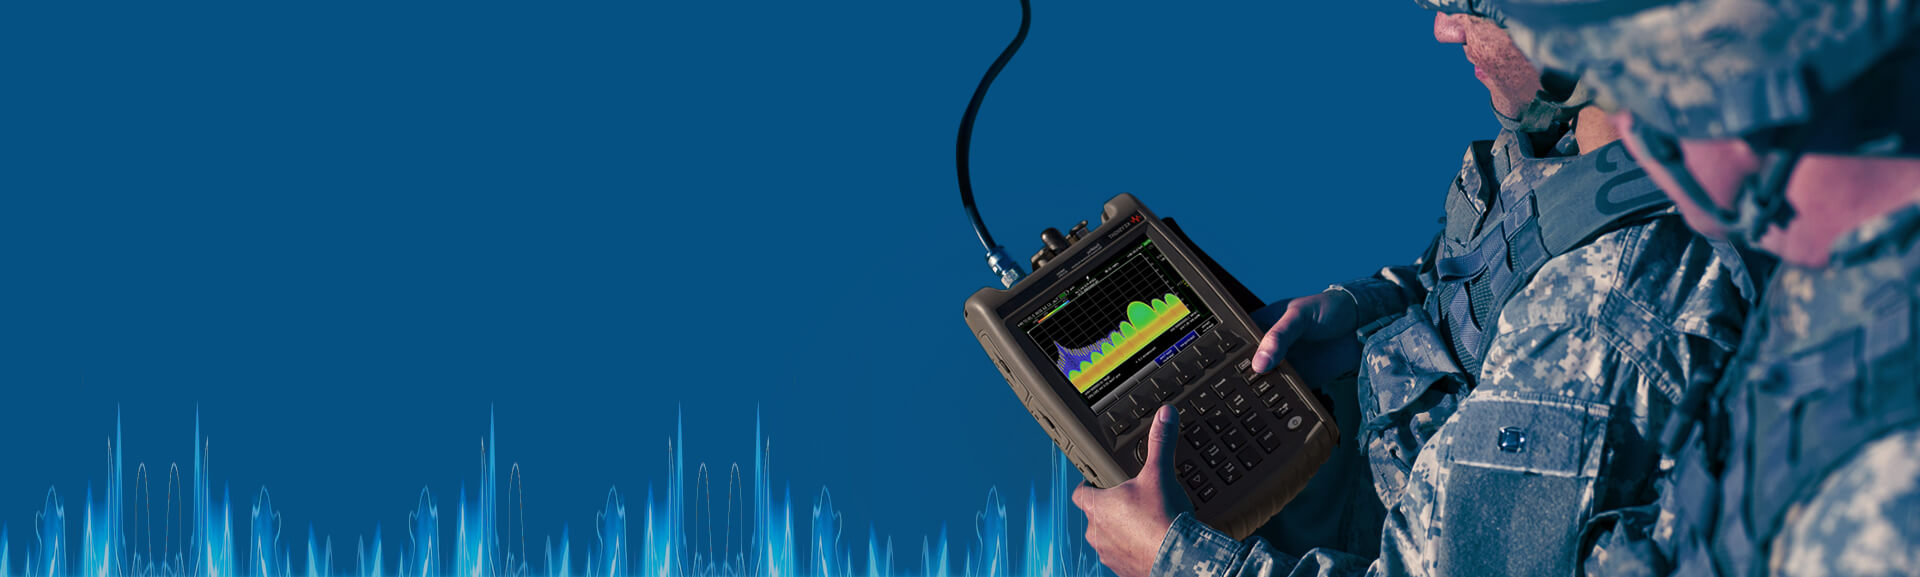 Industry`s First <strong>50 GHz</strong> Handheld Microwave Analyzer